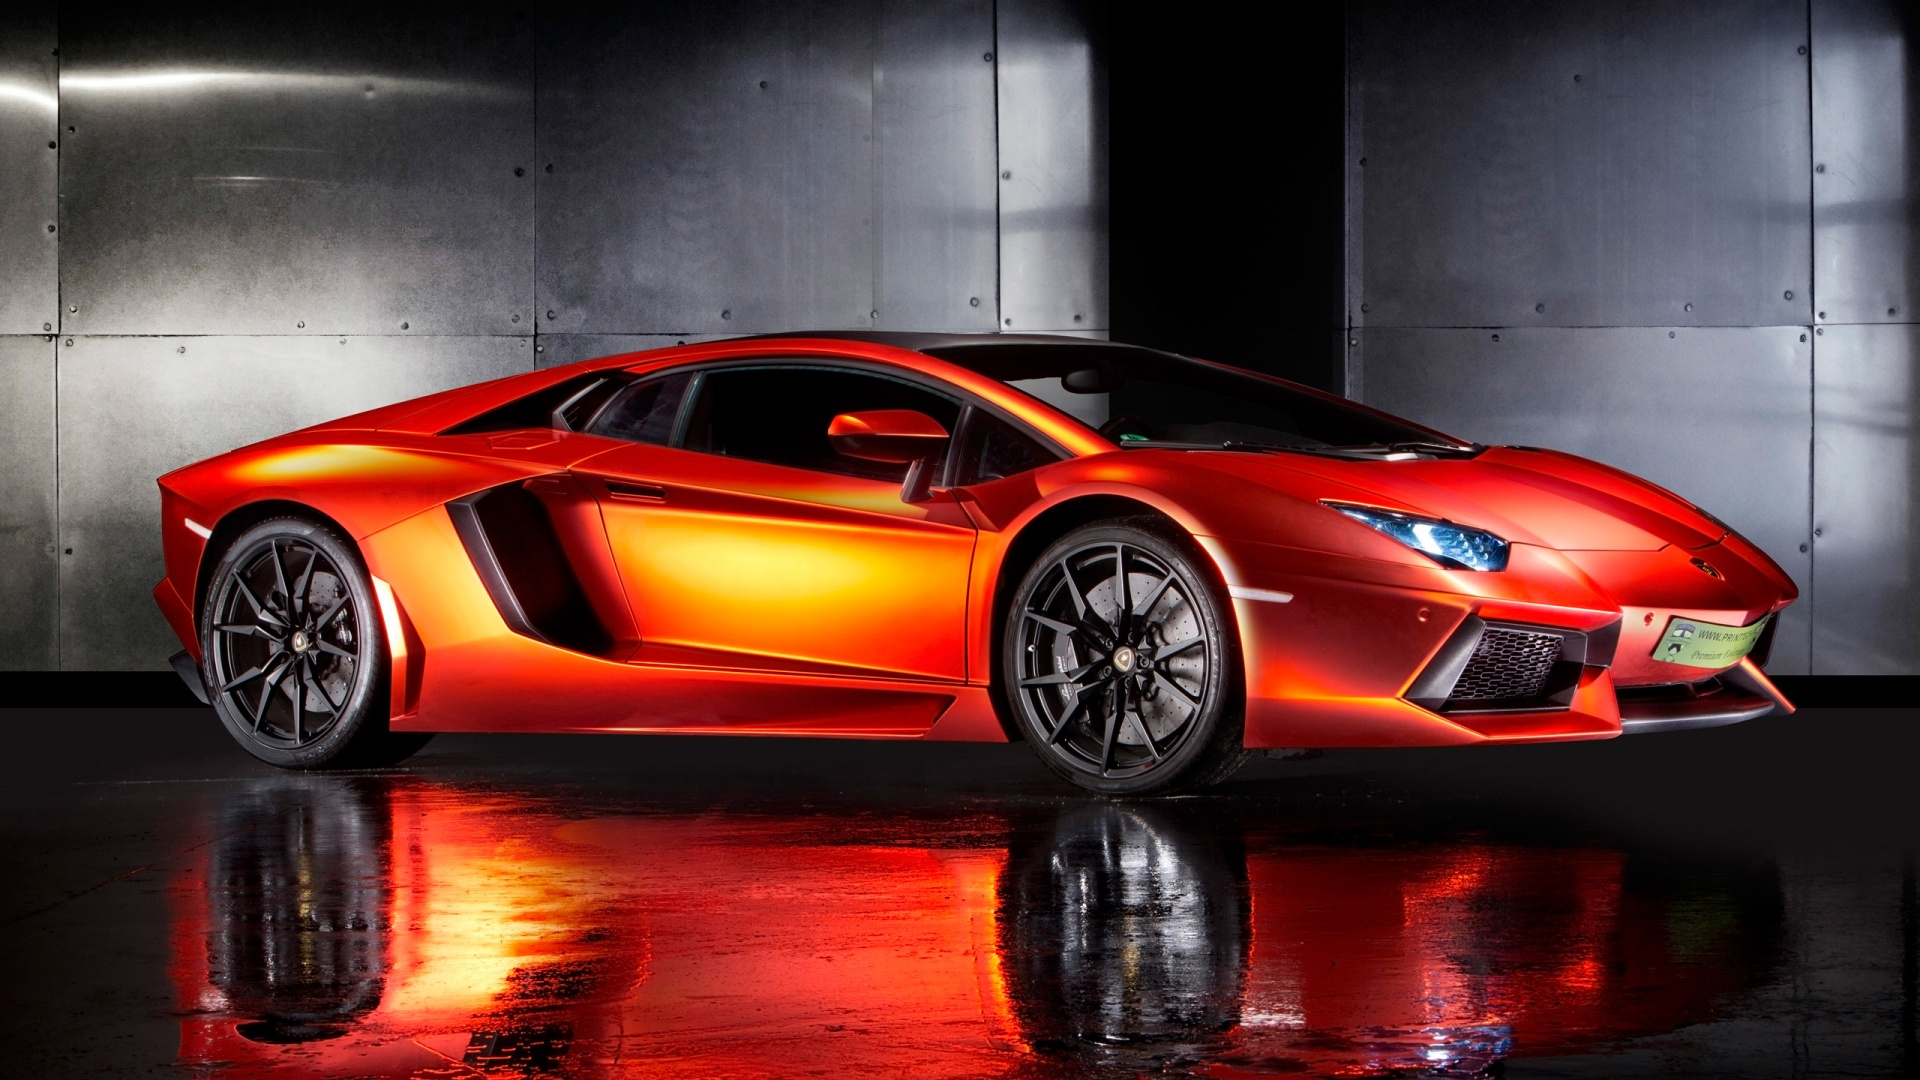 Exotic Cars Wallpaper Pack 25 Exotic Awesome Car Wallpapers Hd